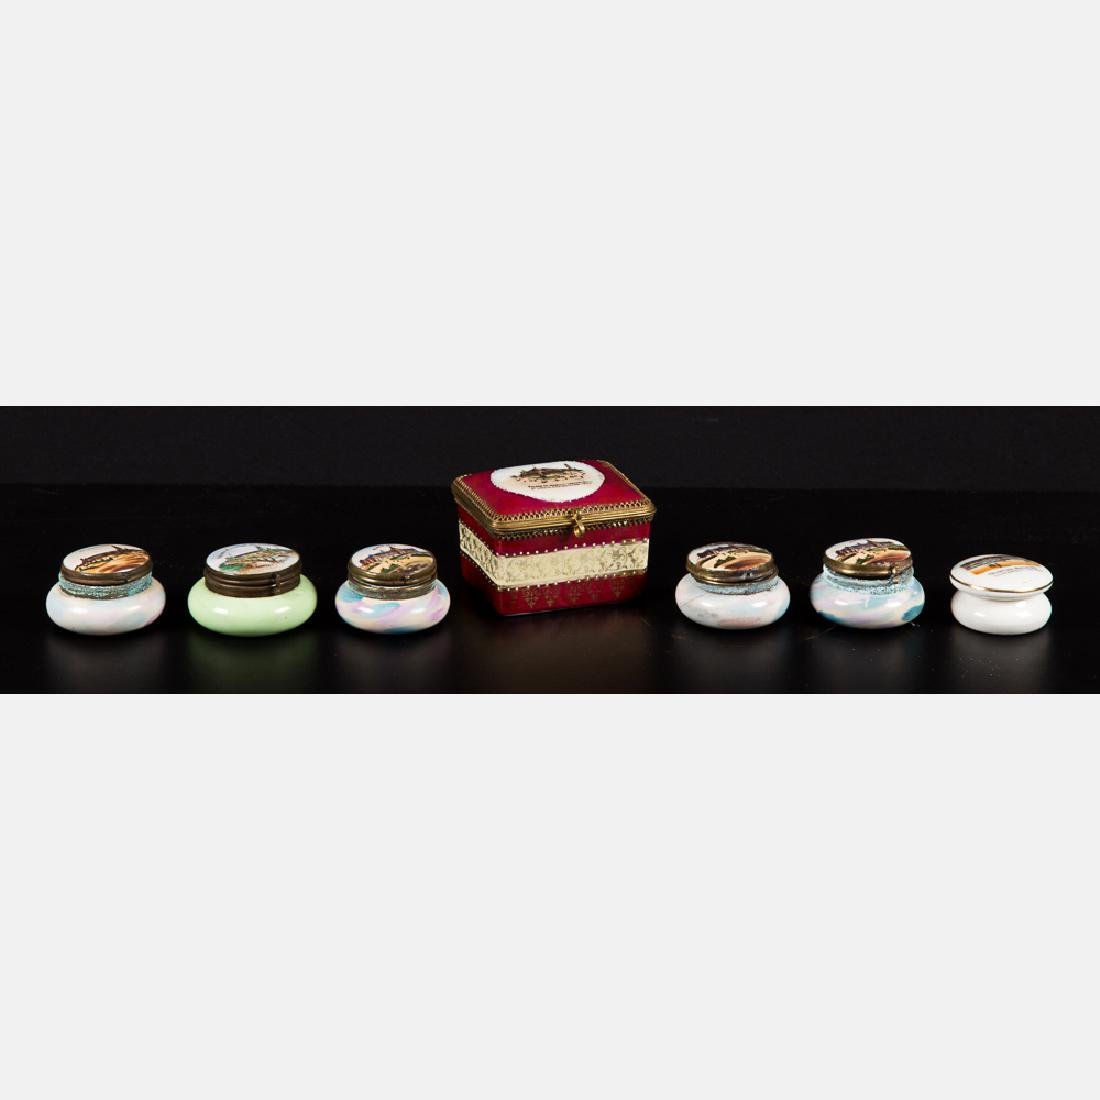 A Group of Seven Diminutive Porcelain and Brass Boxes